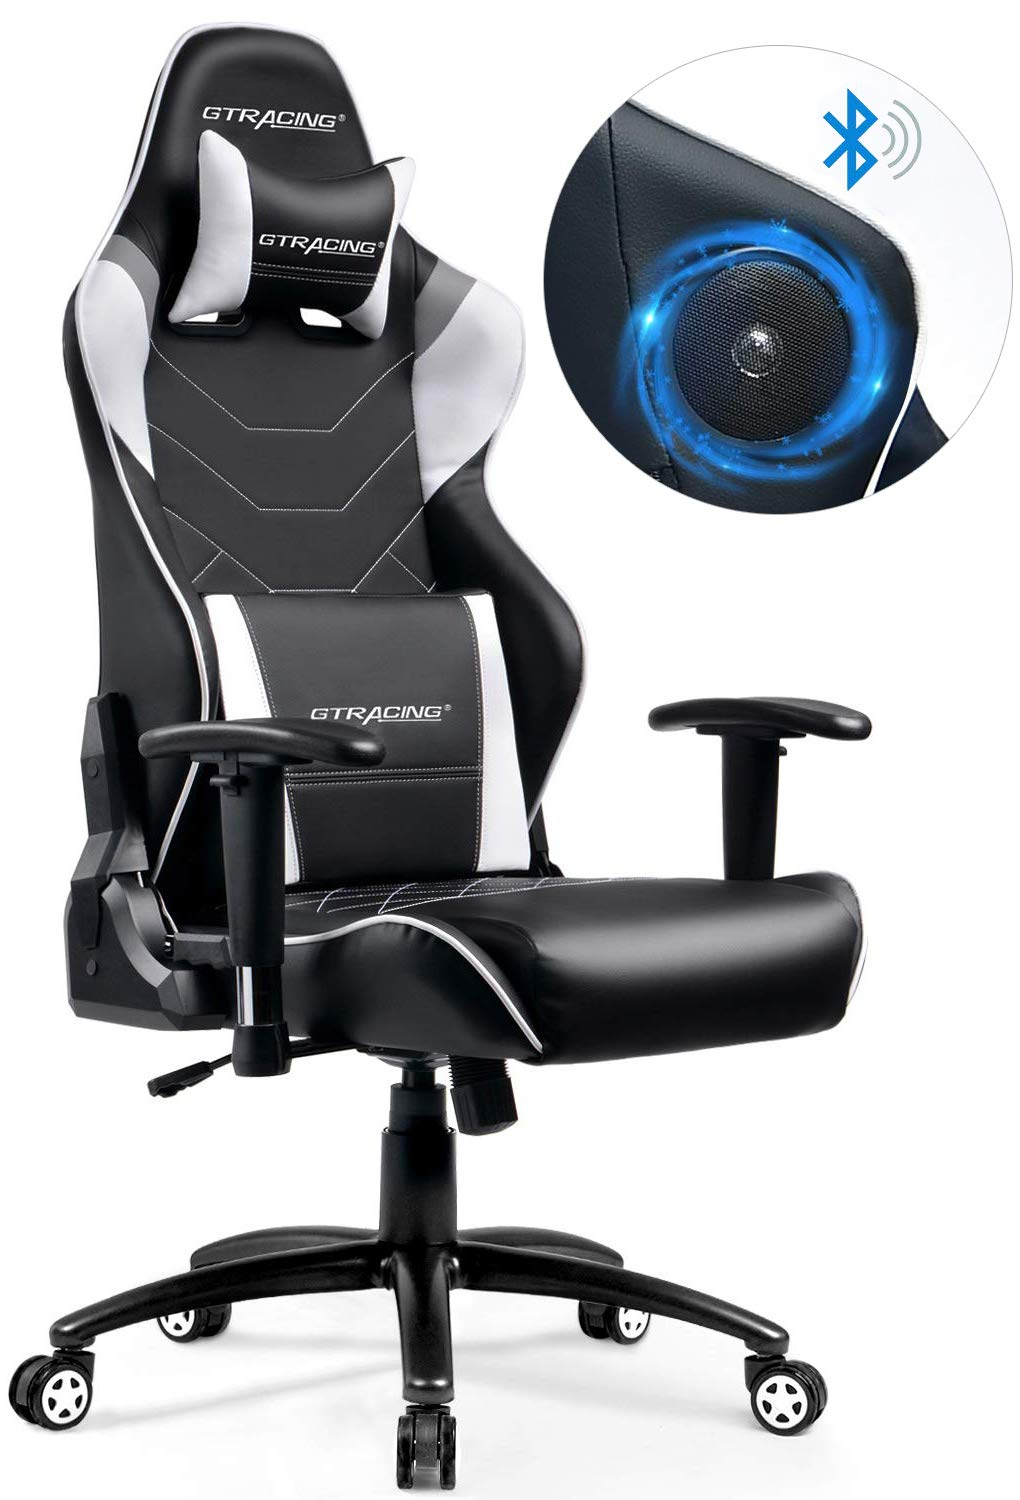 GTRACING Gaming Chair Racing Office Computer Game Chair Ergonomic Backrest and Seat Height Adjustment Recliner Swivel Rocker with Headrest and Lumbar Pillow E-Sports Chair by GTRACING